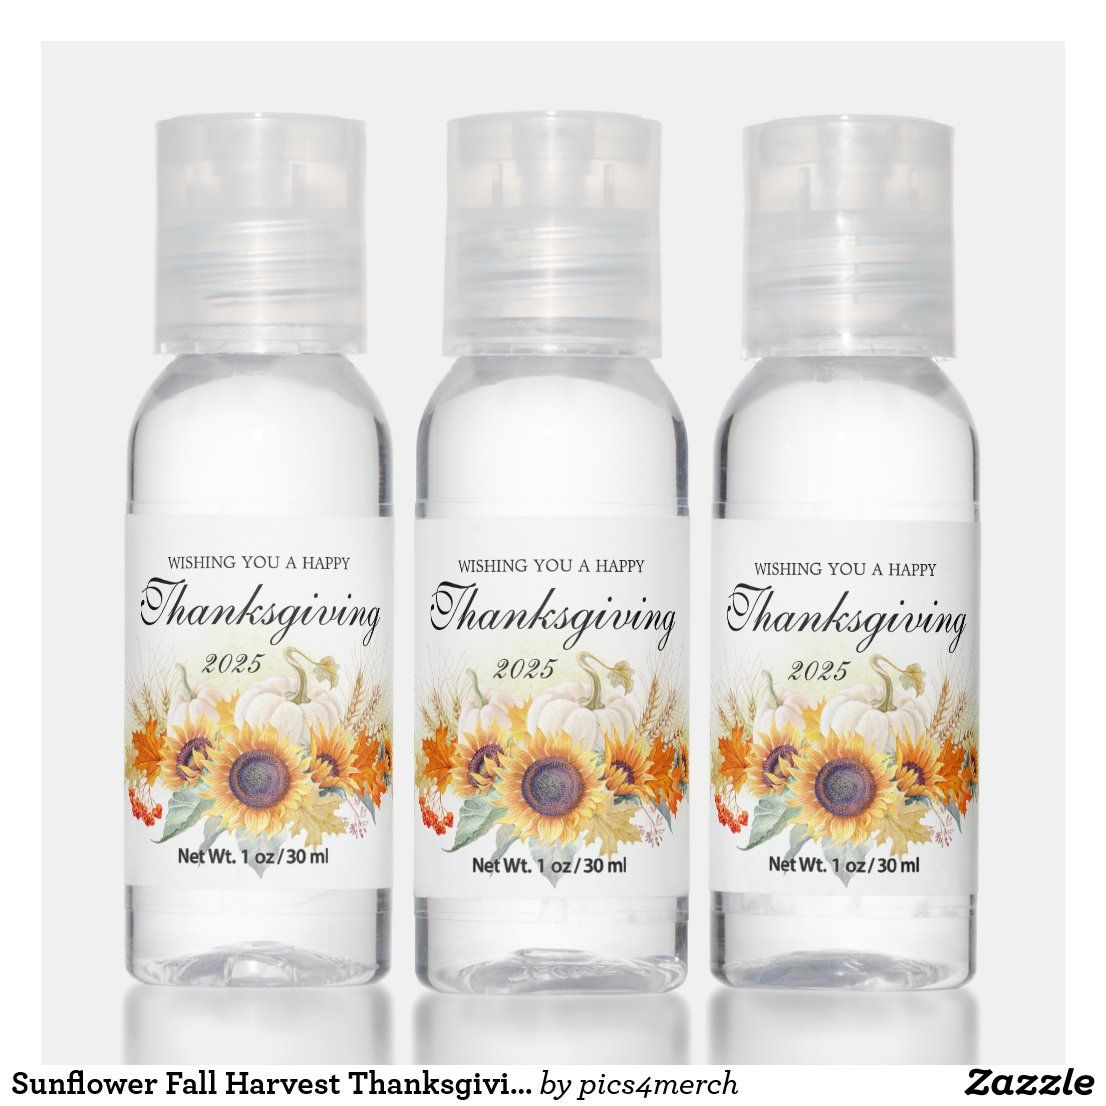 Sunflower Fall Harvest Thanksgiving Party Favor Hand Sanitizer Zazzle Com In 2020 Thanksgiving Party Favors Thanksgiving Parties Hand Sanitizer